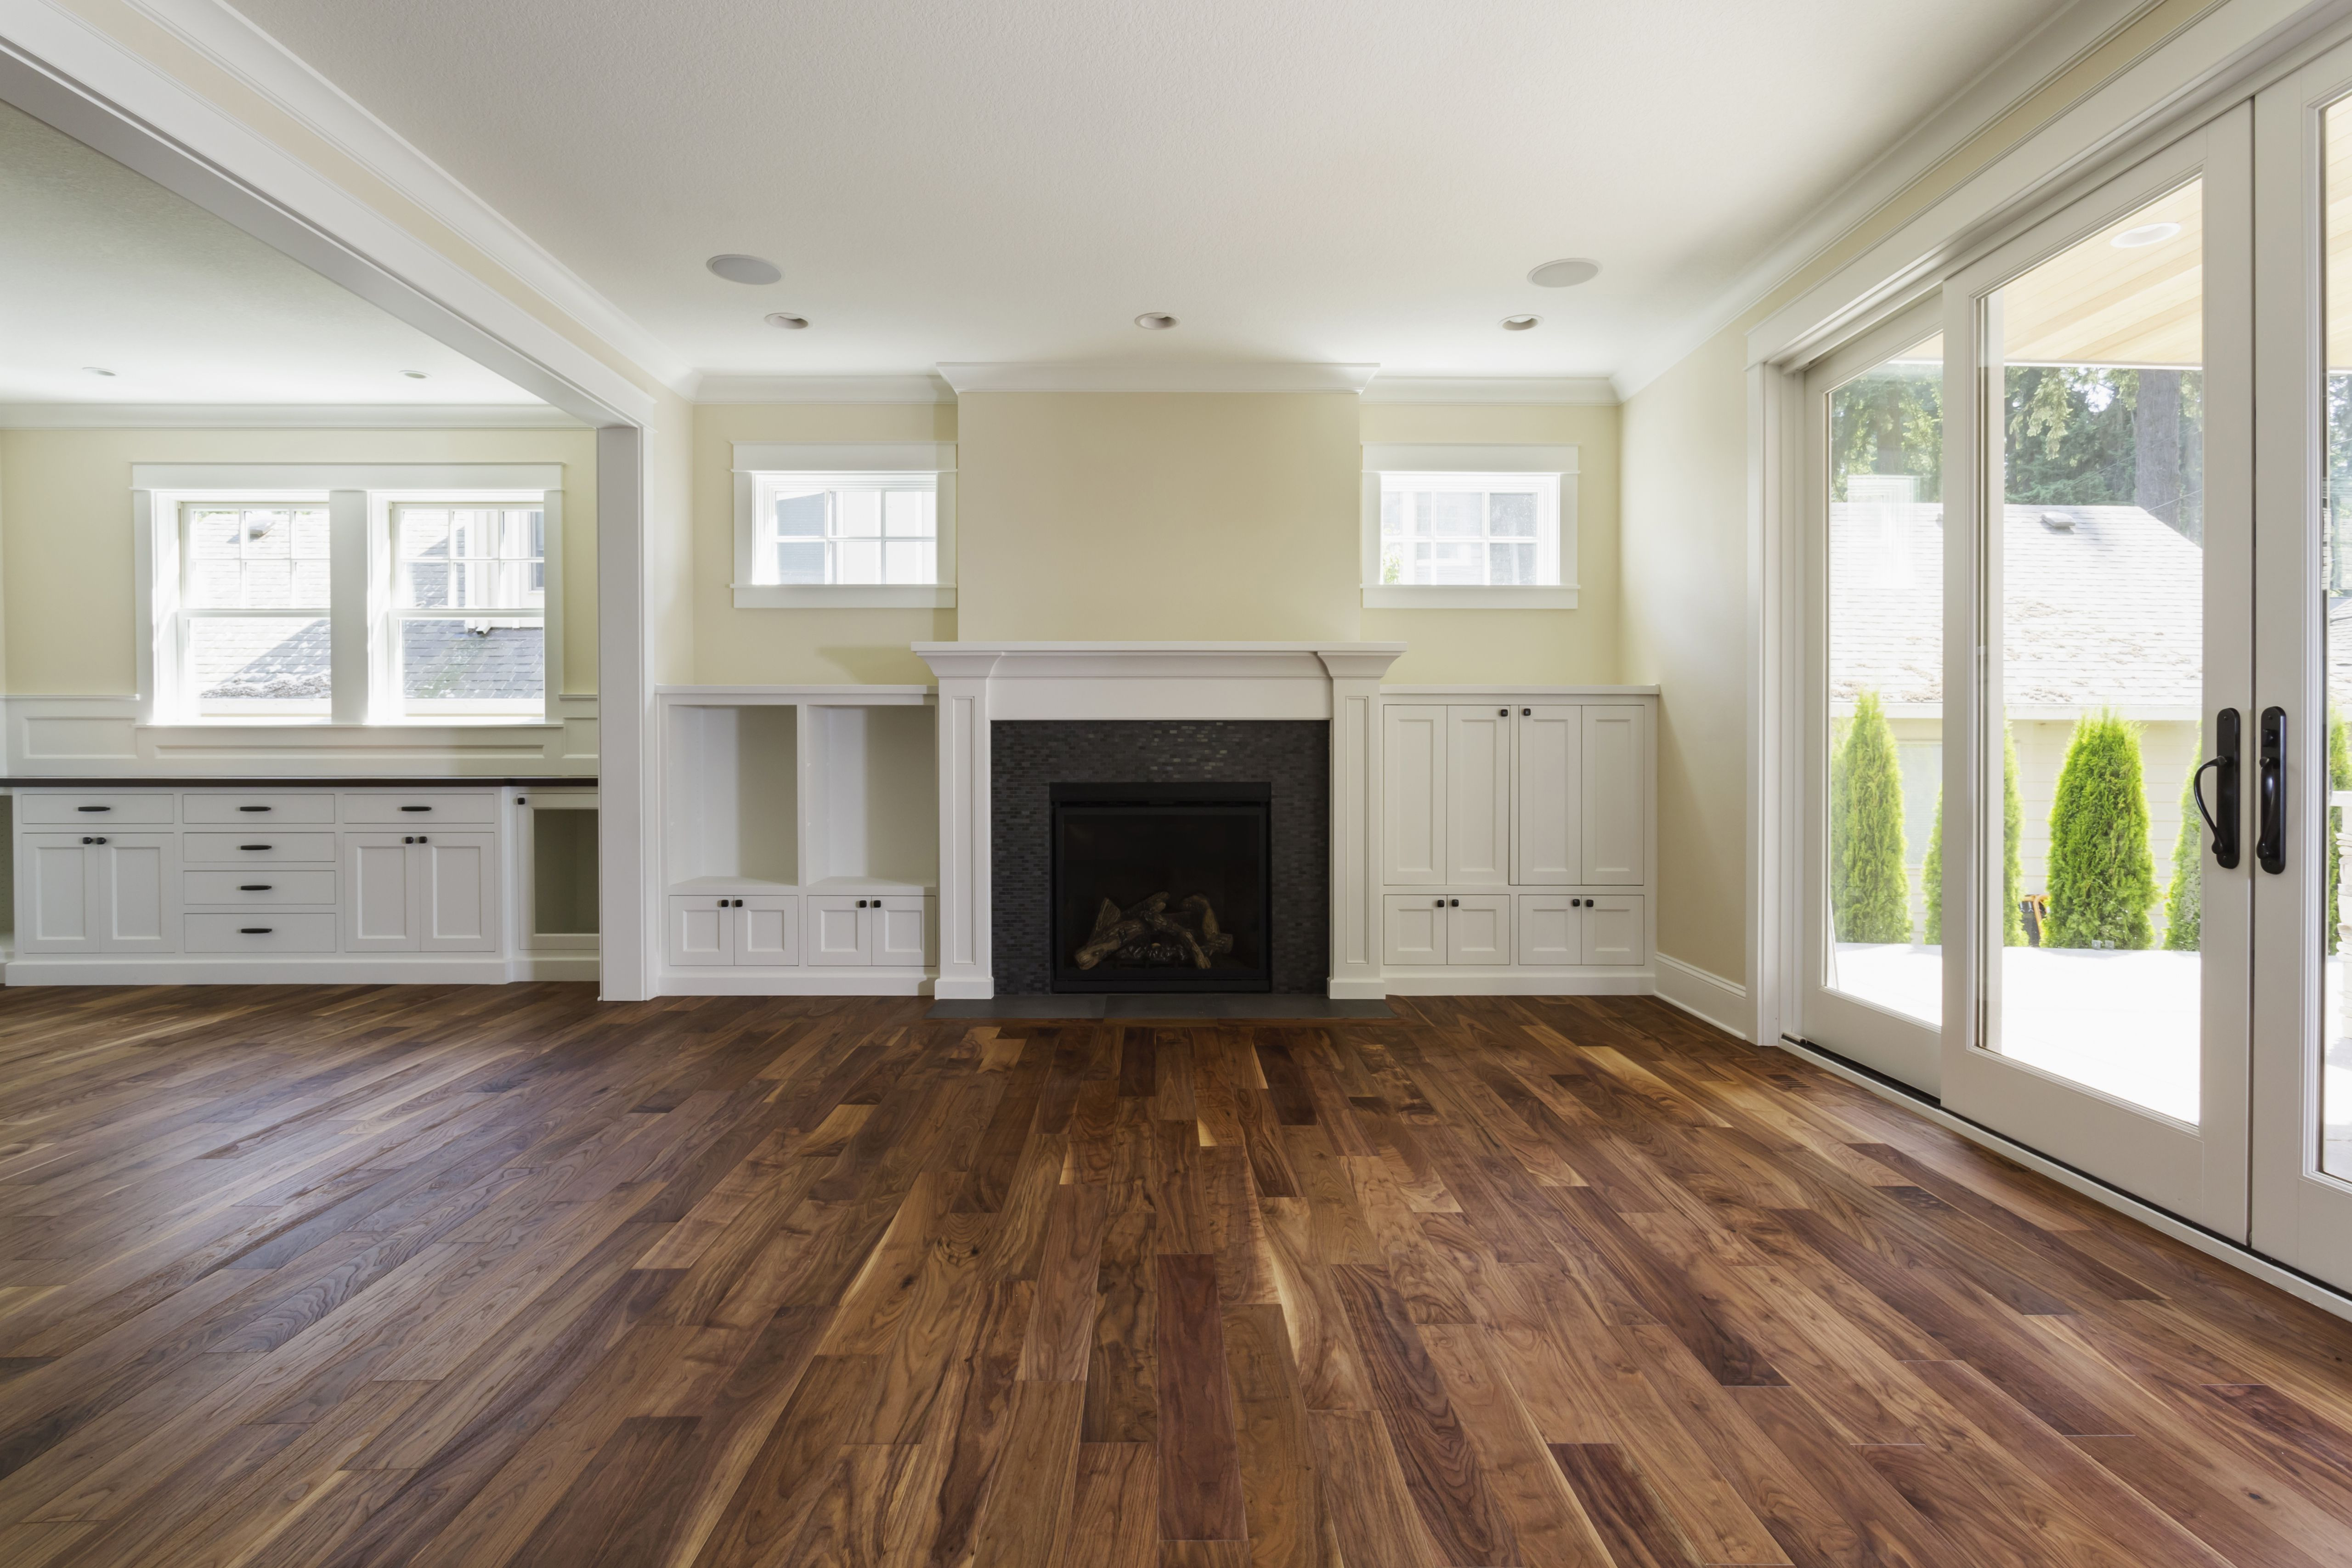 which hardwood floor width is better of the pros and cons of prefinished hardwood flooring for fireplace and built in shelves in living room 482143011 57bef8e33df78cc16e035397